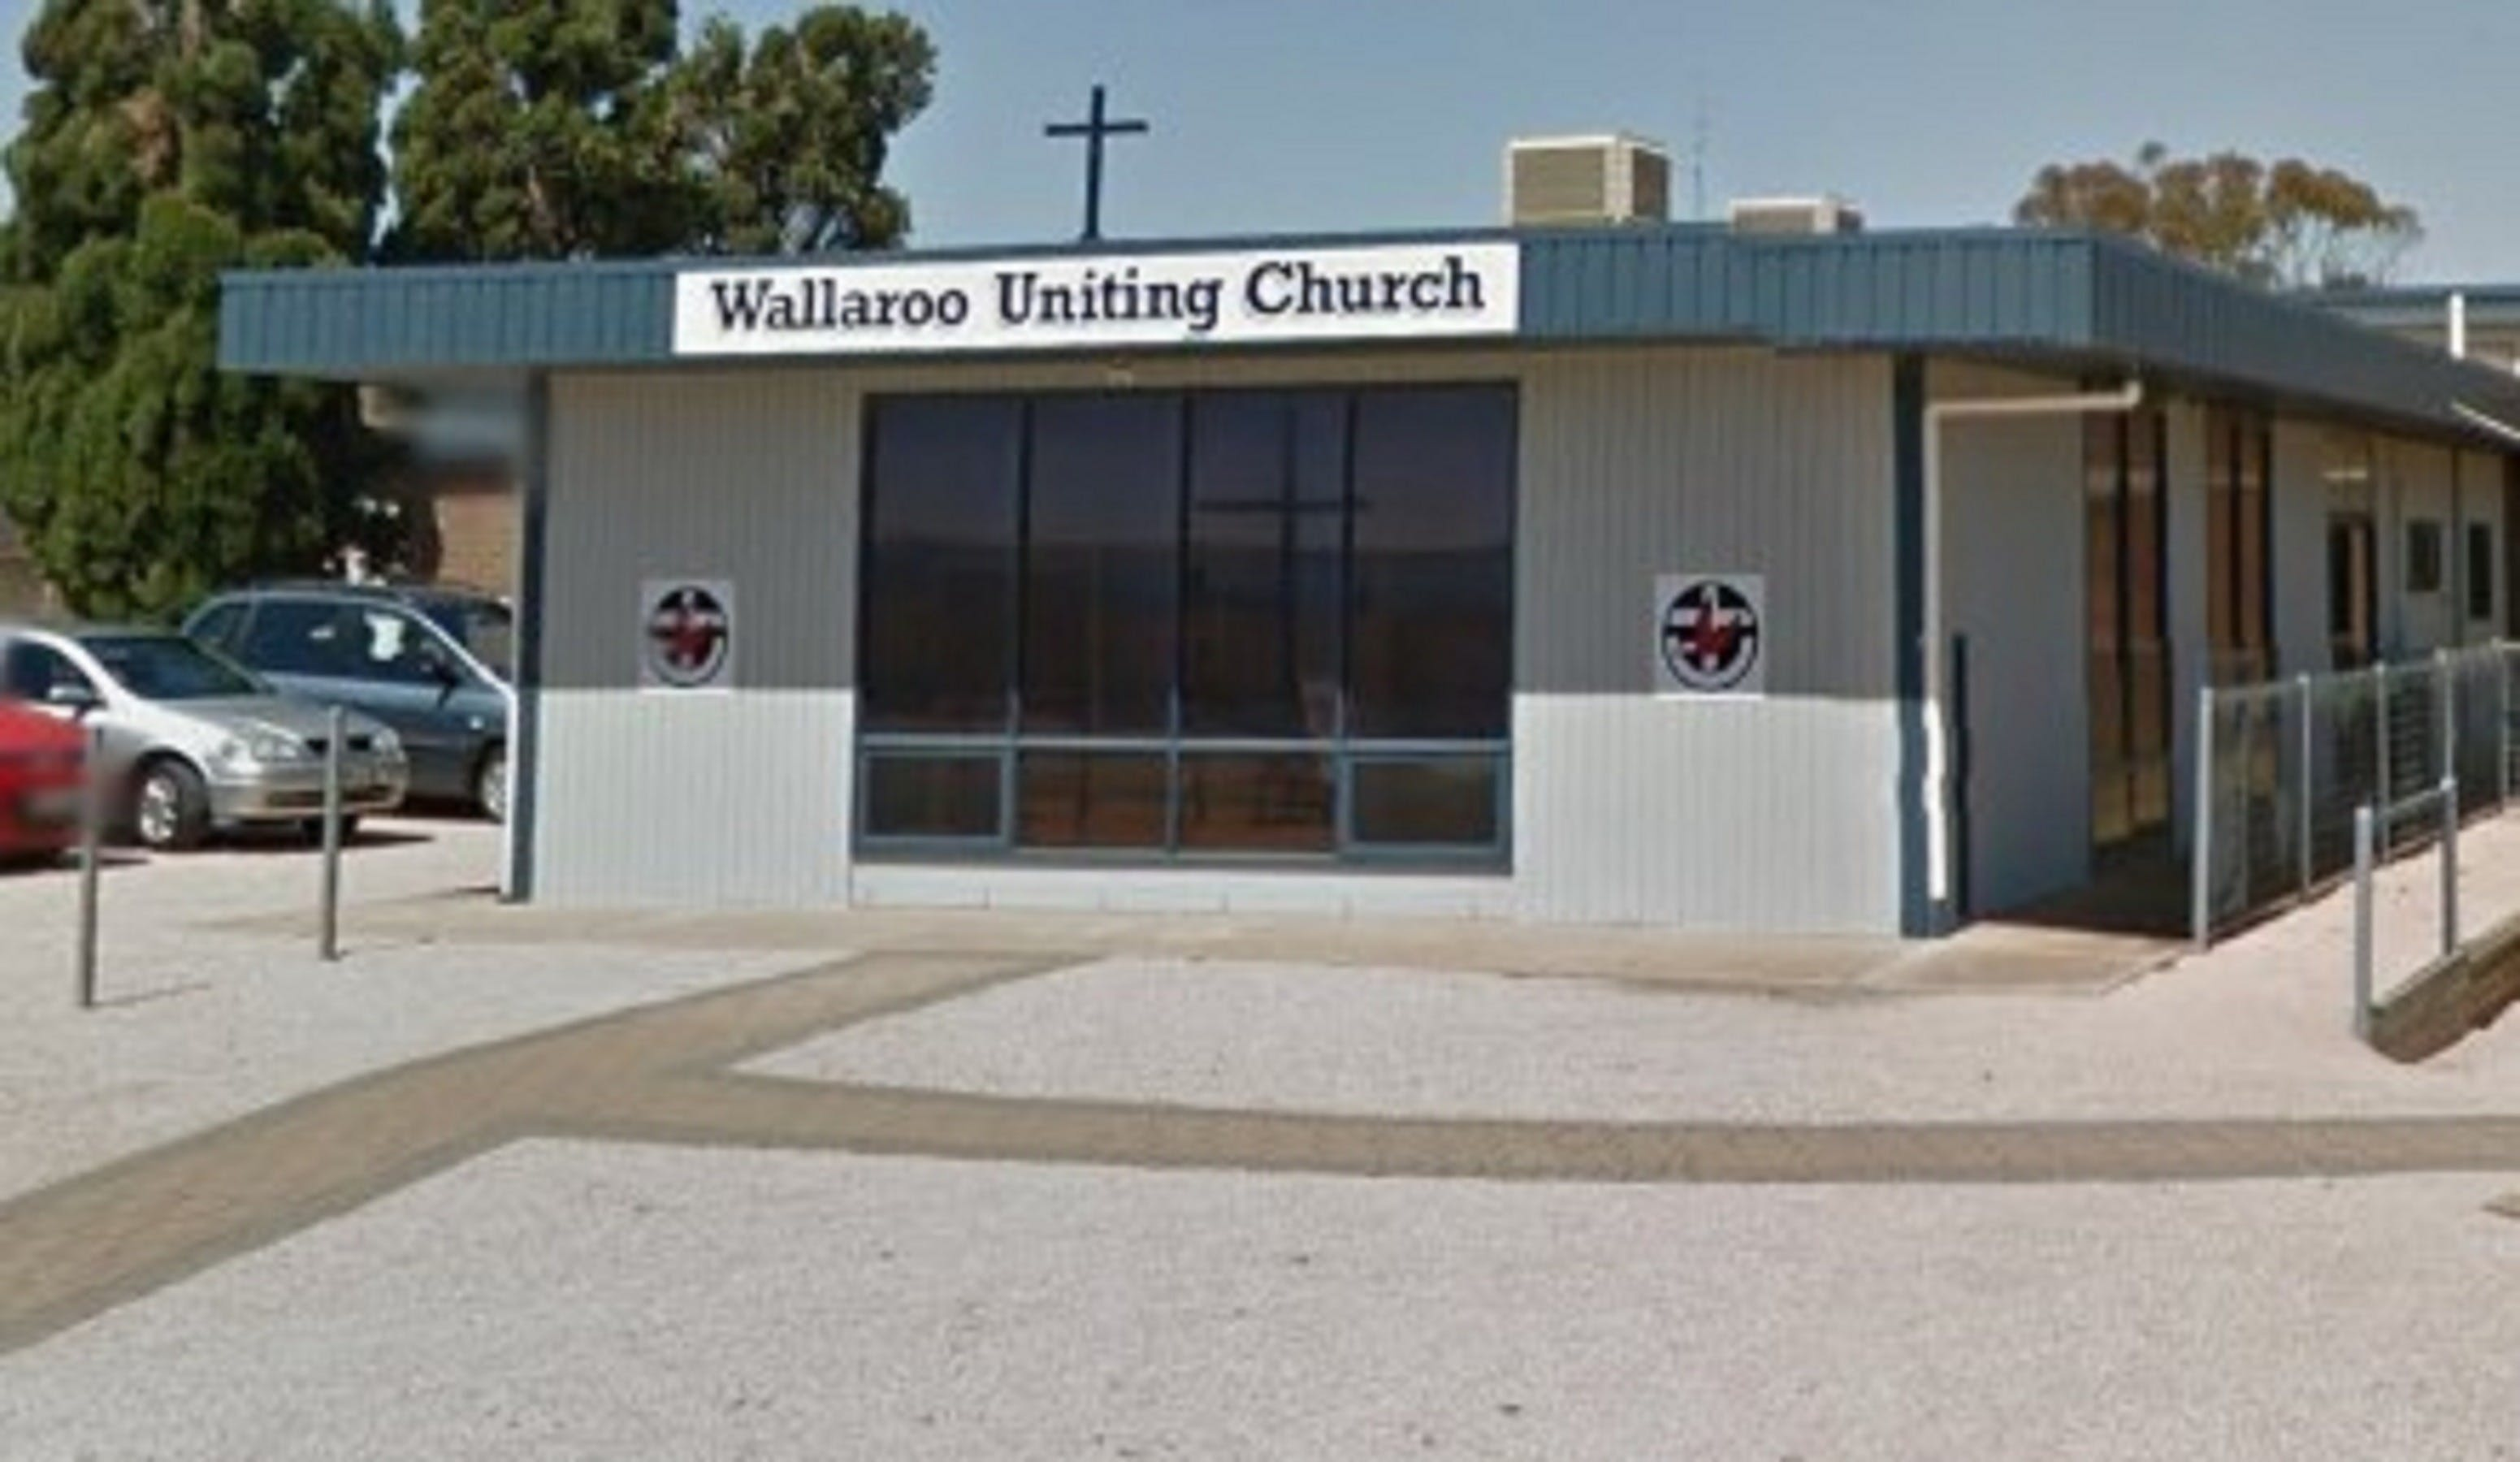 Wallaroo Uniting Church